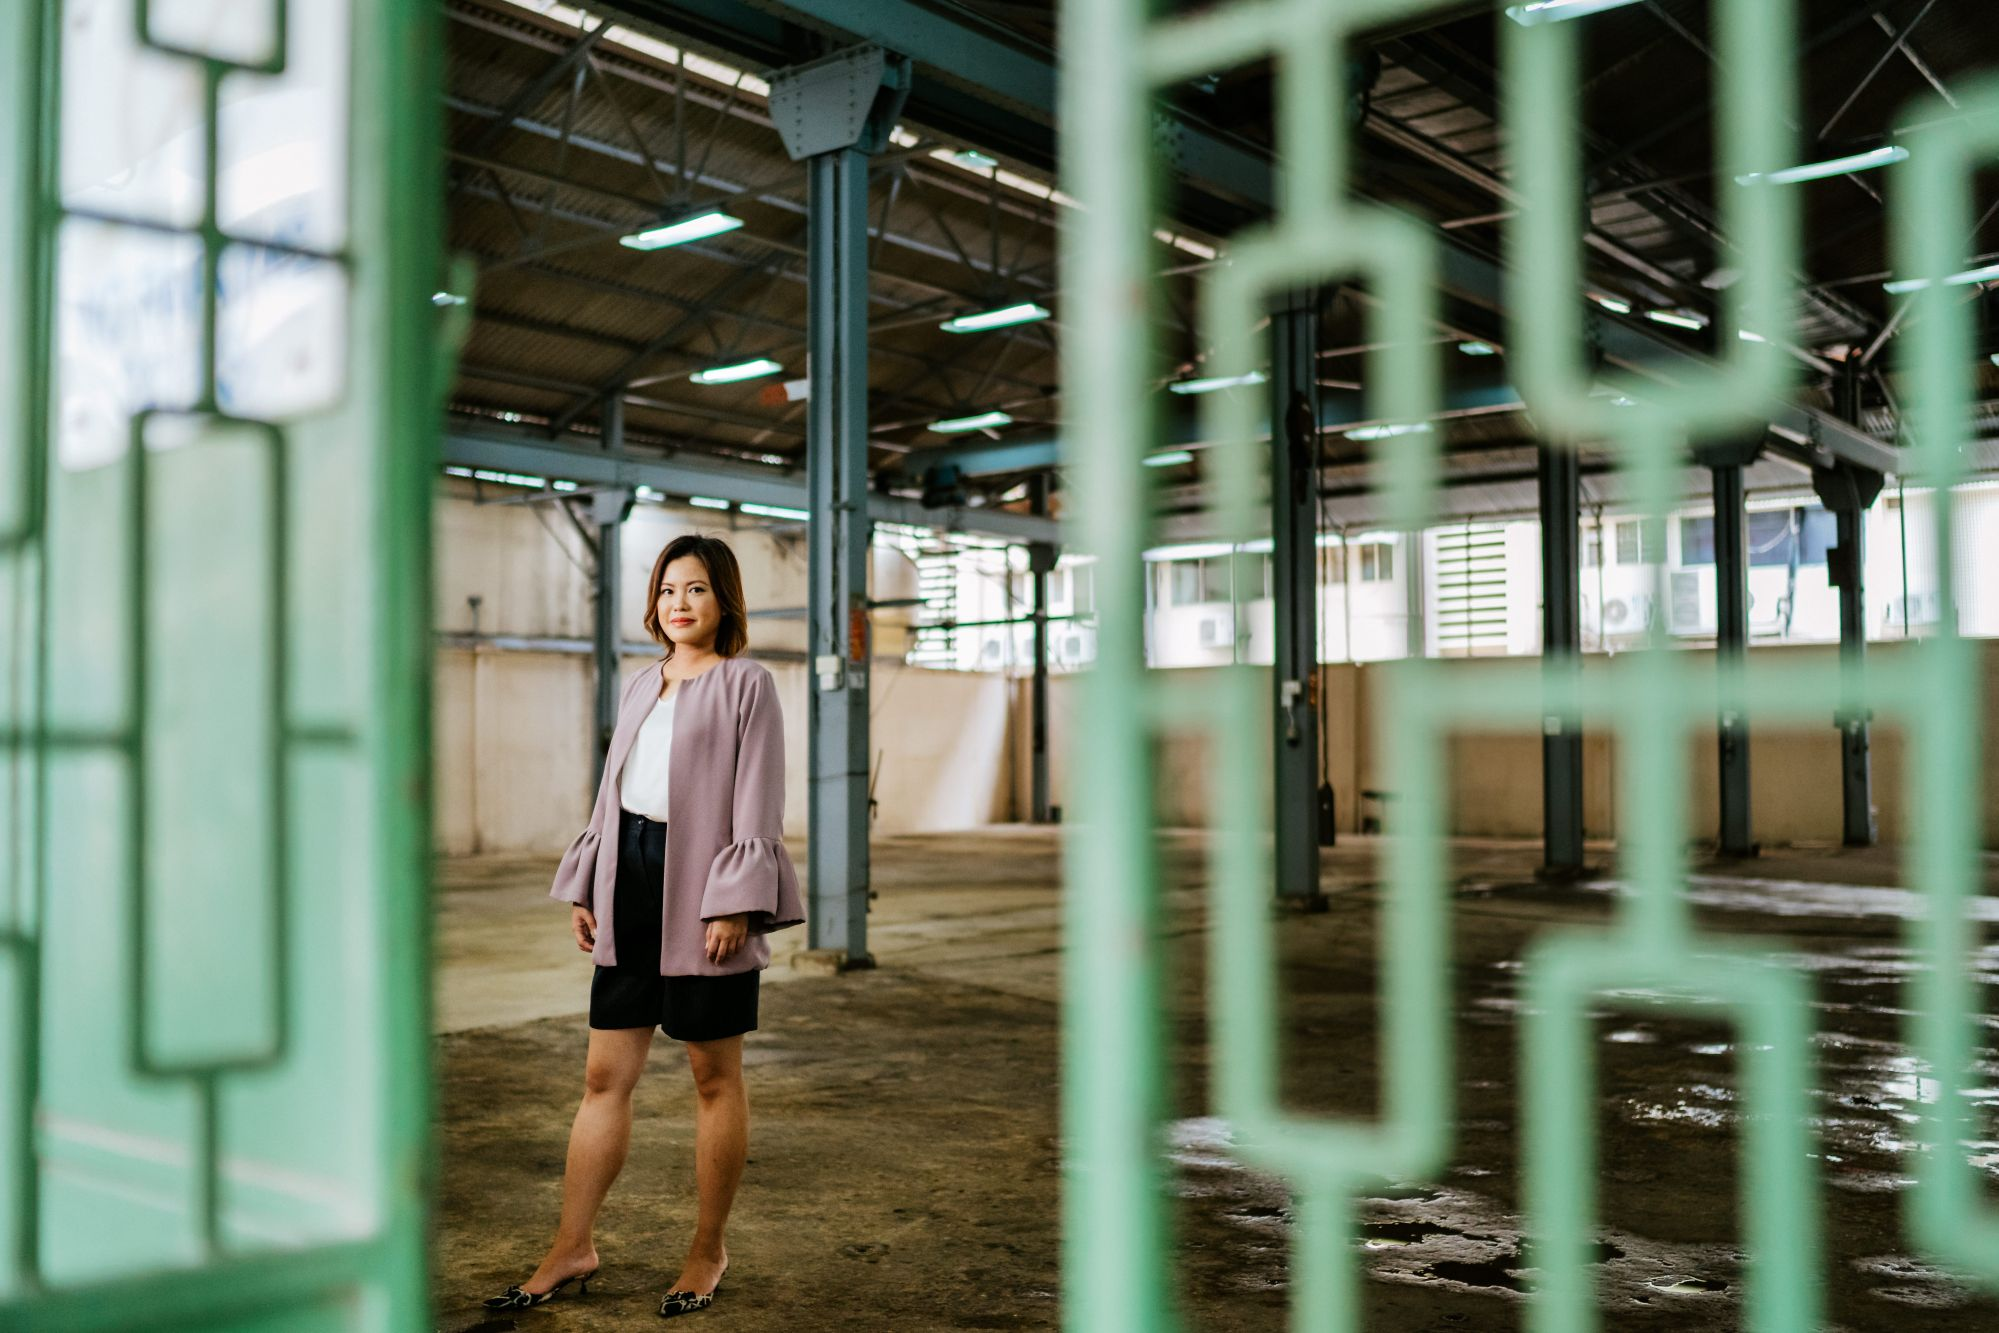 Gallerist Audrey Yeo Transforms This Former Ship Repairs Workshop And Warehouse Into A Pop-Up Art Destination